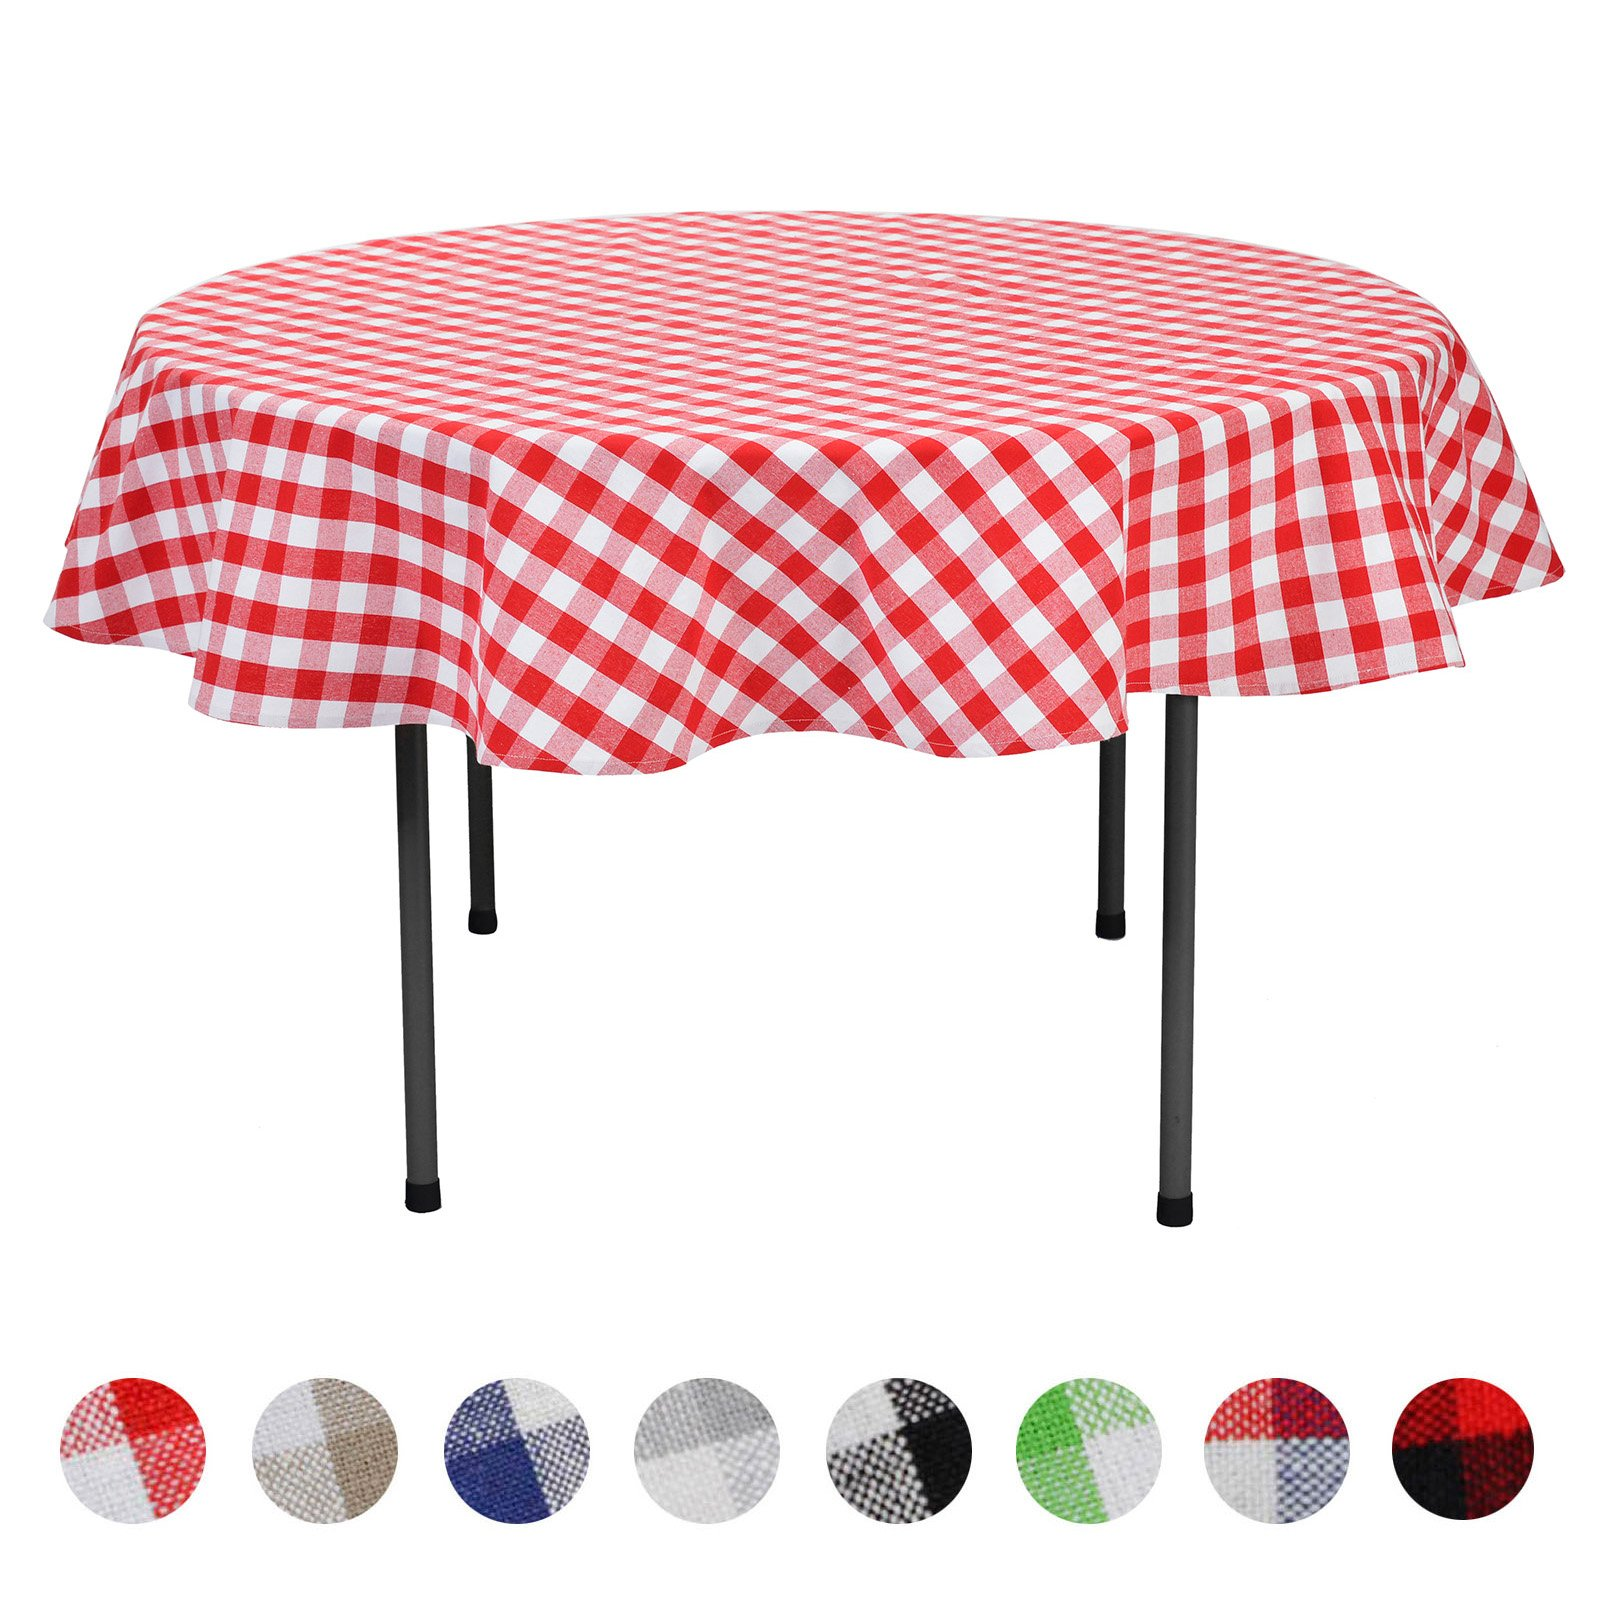 VEEYOO Plaid Check Tablecloth Gingham 100% Cotton for Home Kitchen Party Indoor or Outdoor Use 70 inch Round (Seats 4 to 6 People), Red & White